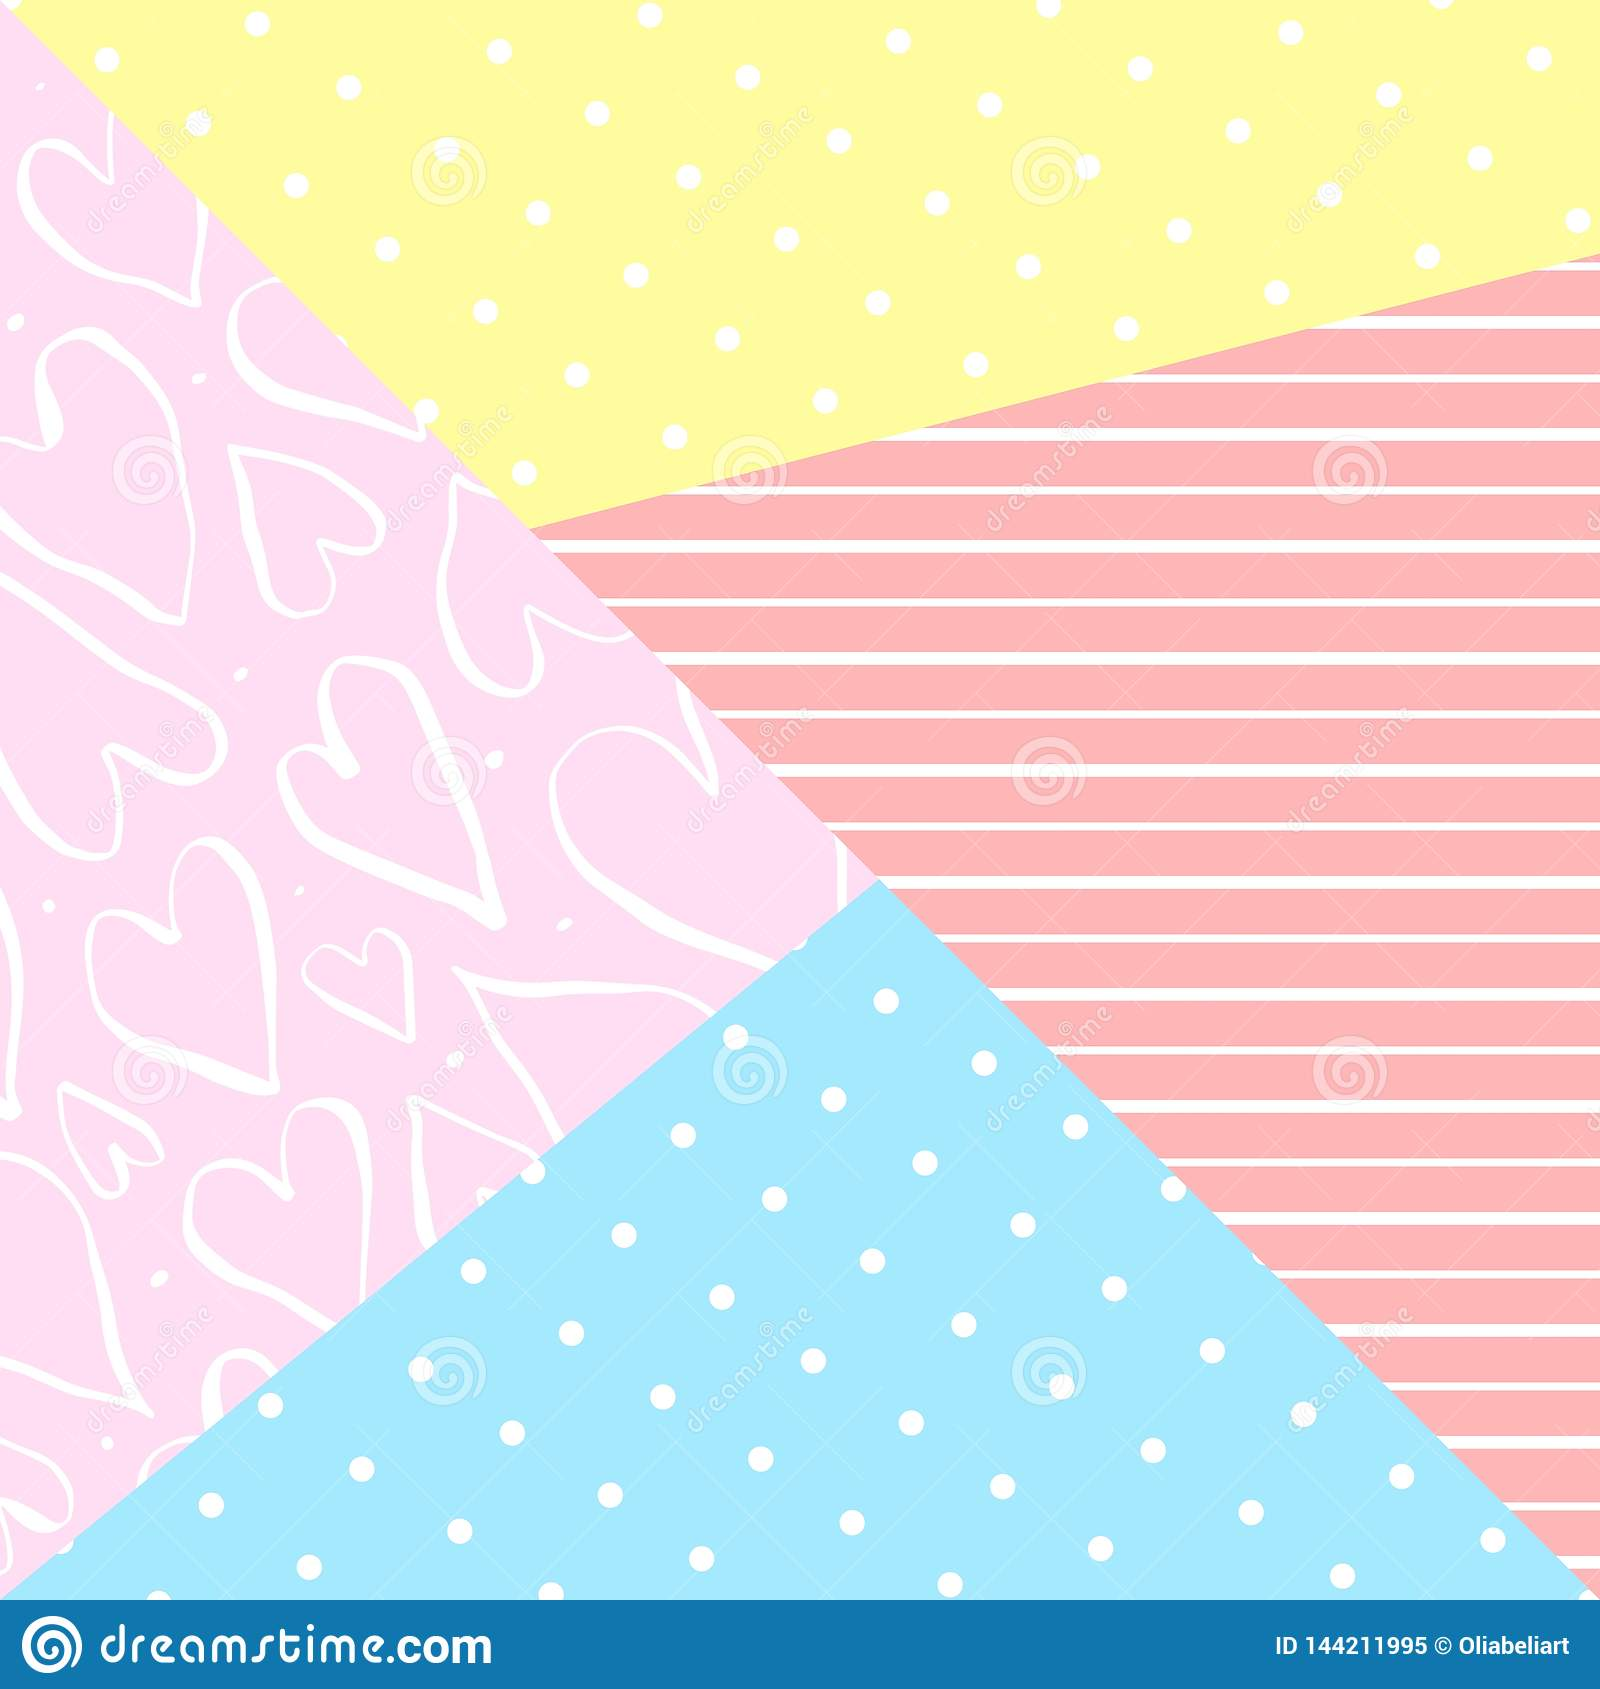 Vector cute geometric background with decor elements.